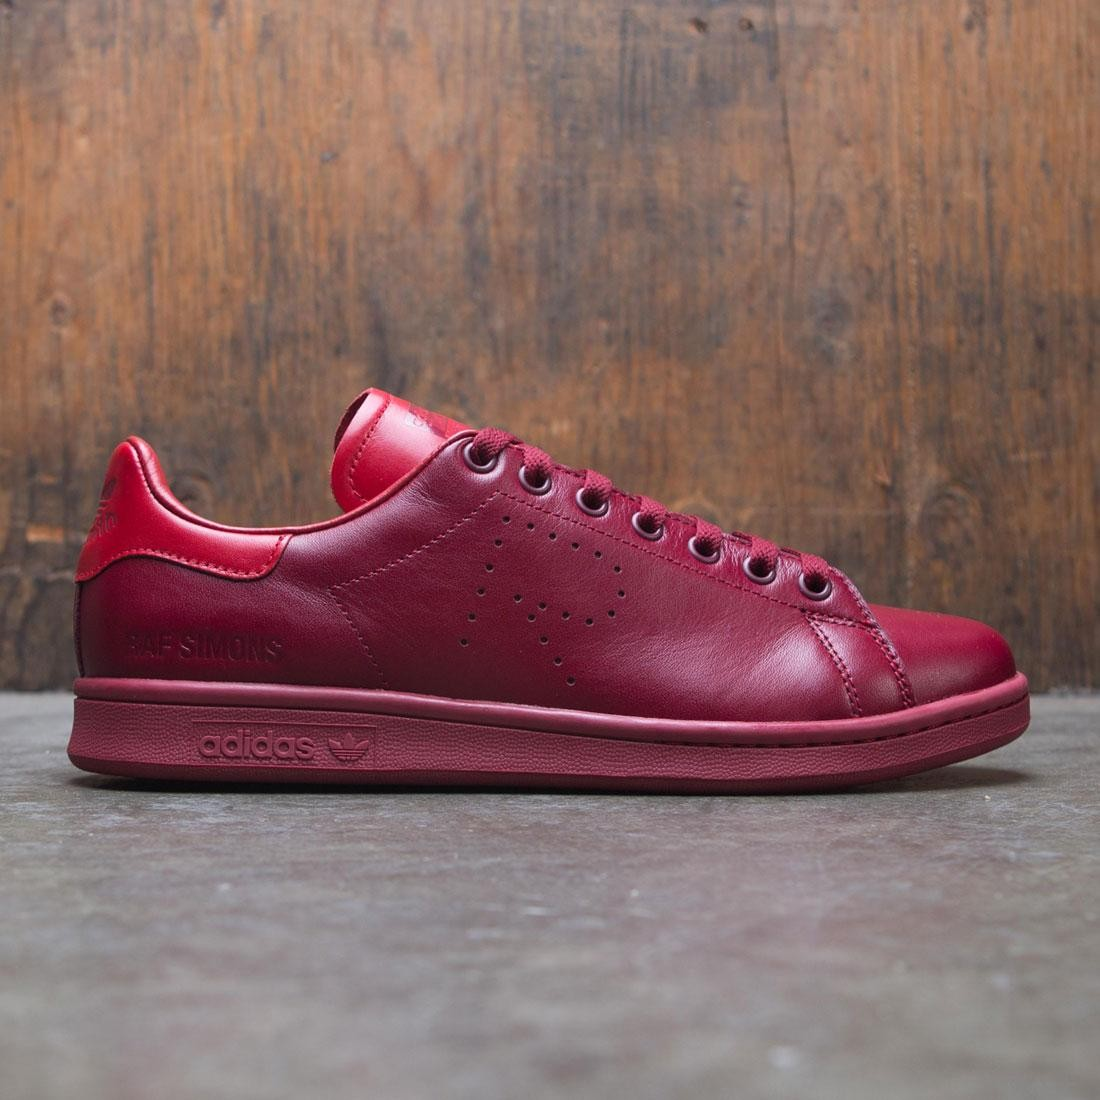 0dba6b9d4af5 Adidas x Raf Simons Men Stan Smith burgundy power red collegaite burgundy